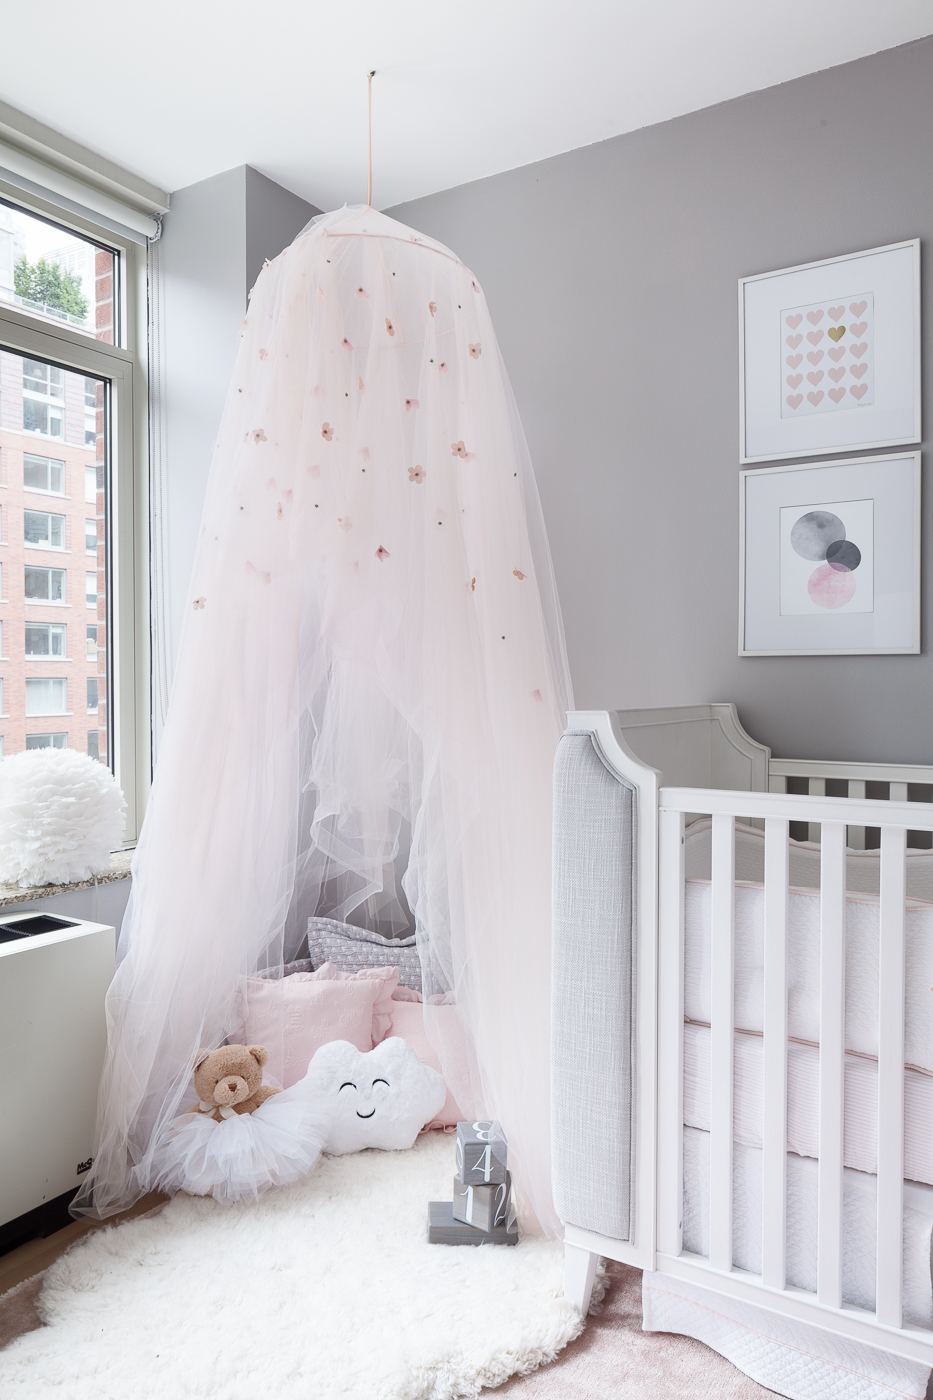 The Canopy in this nursery is really the design feature. The accessories play an important part in the story. The blush pink aacent pillows with the ruffle trim carry the color story forward and the ruffle trim keeps with the playfulness of the room. The fabric is linen and makes them appear casual. The grey cushions anchor the play area playing off the wall color and have a rouched stitching detail. Again the fabric is linen and works well with the linen on the crib. There are three cloud themed accents in the room on special request by the homeowner - the cloud pillow, the cloud in the mobile and the cloud shag rug anchoring the canopy.  The blocks bring some natural organic element to the picture.